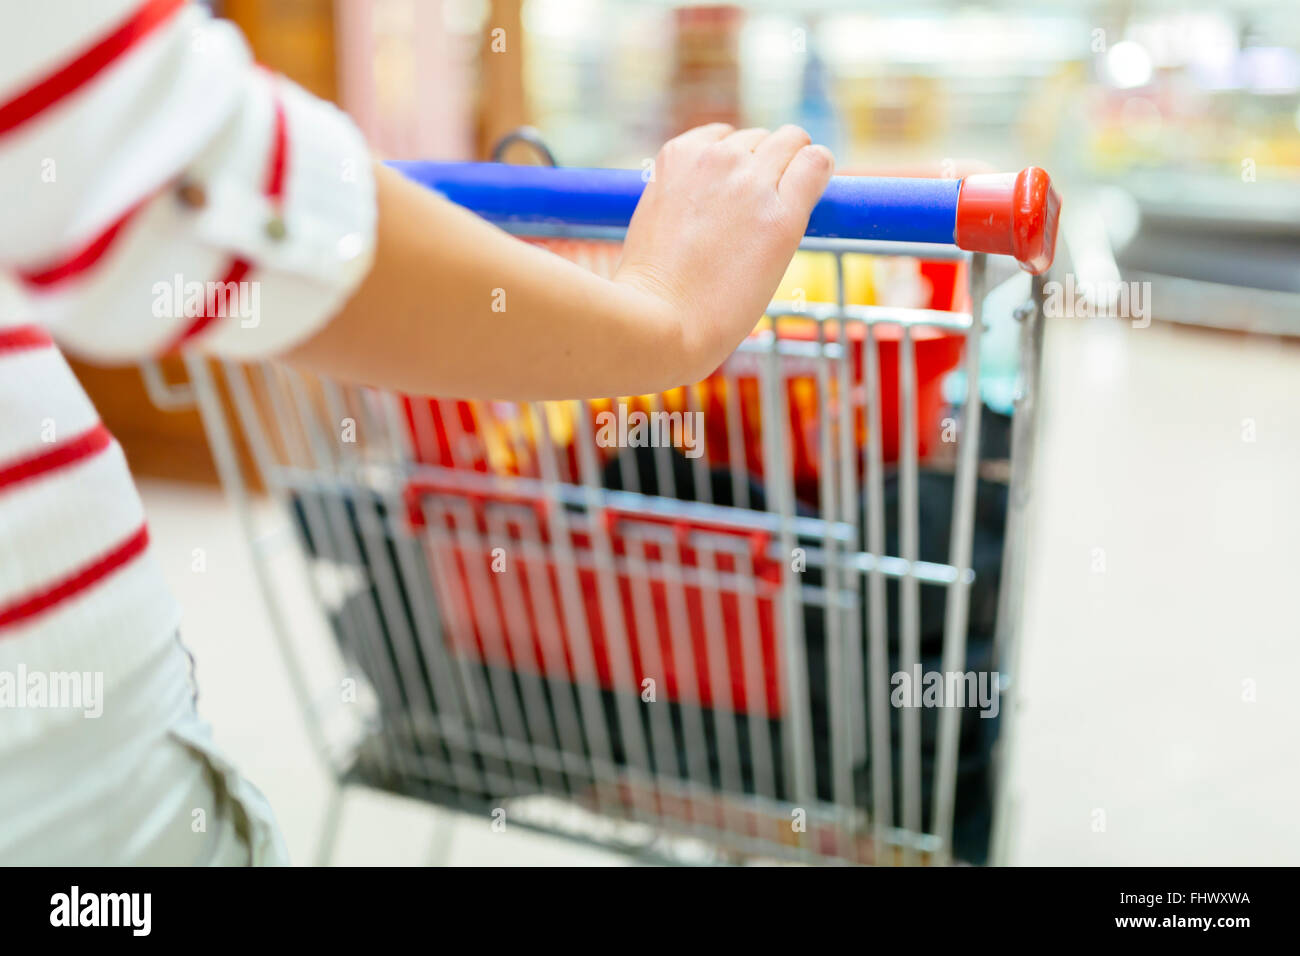 Woman shopping in supermarket and filling shopping cart - Stock Image